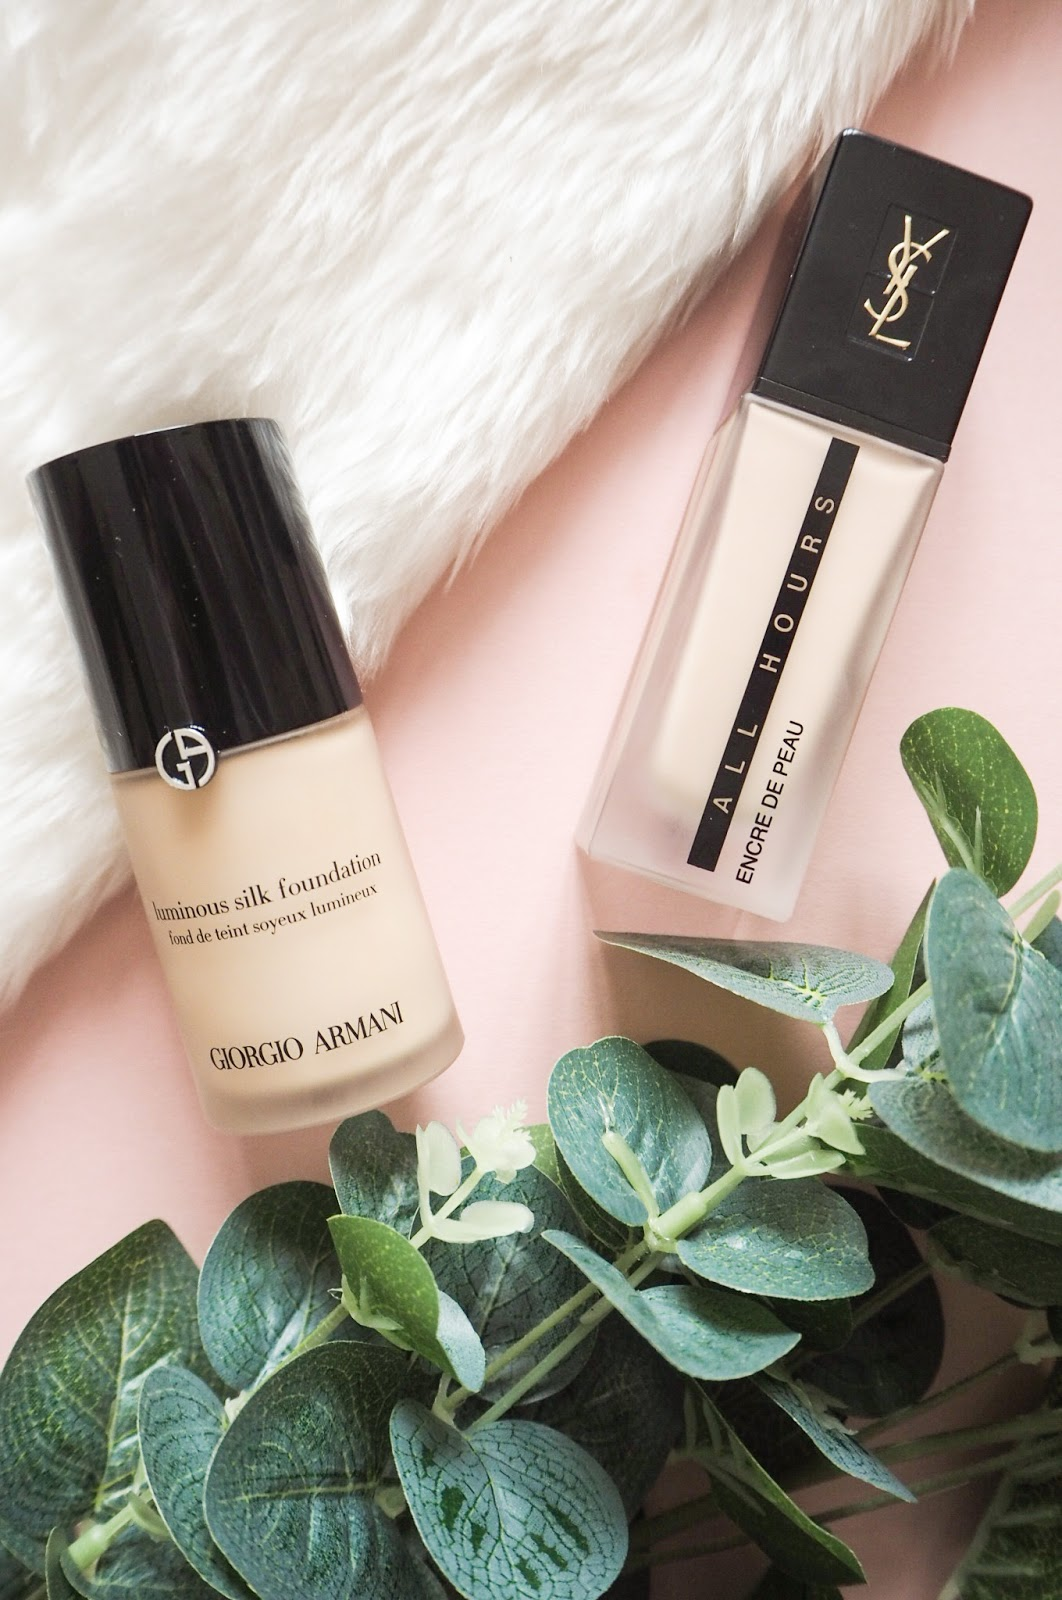 Armani Luminous Silk Shade 2 Compared to YSL All Hours Foundation B 10 - Comparison and Review